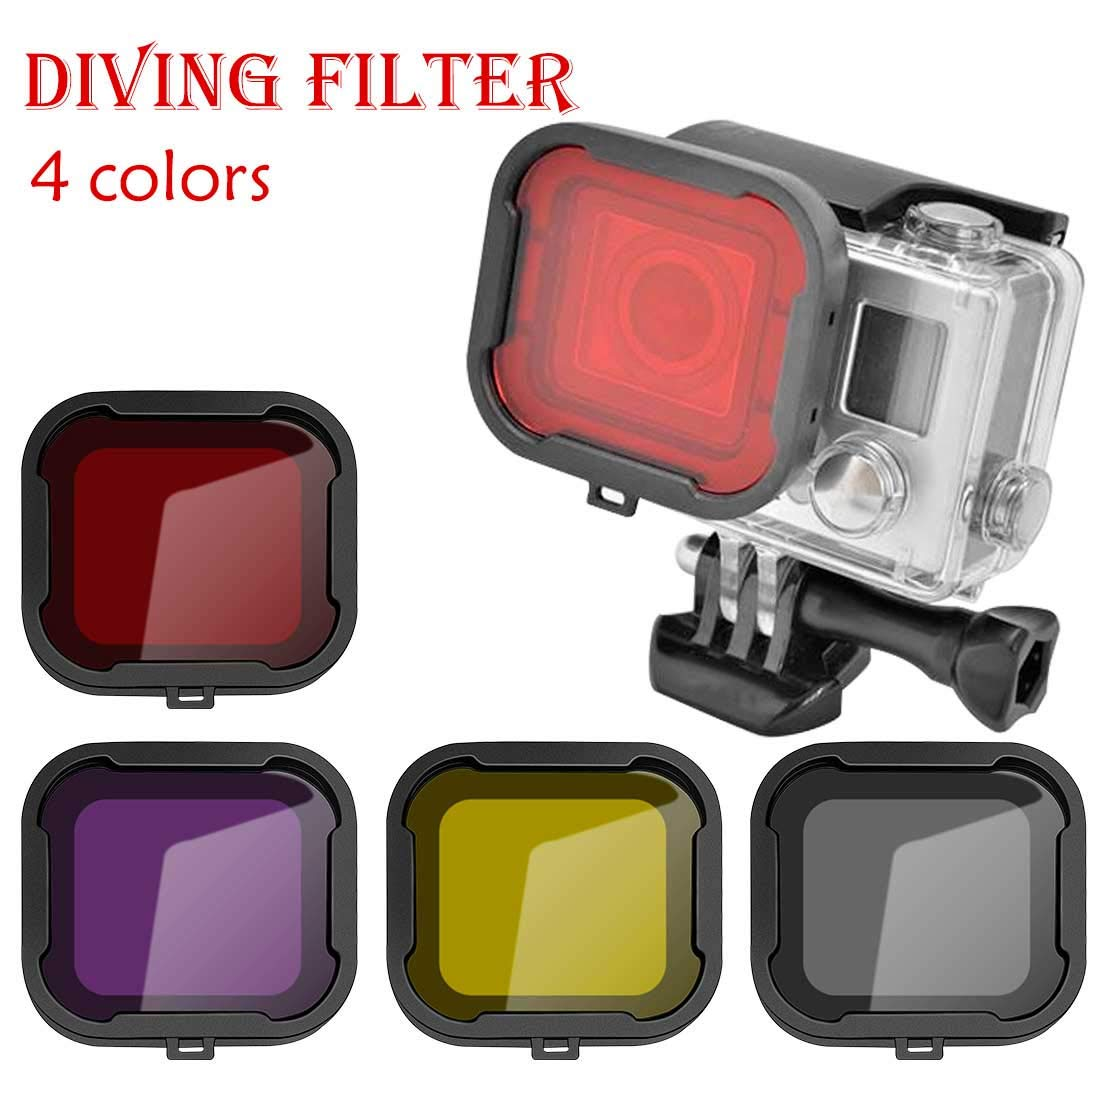 ihen-Tech Underwater Diving Filter Lens Cover Filter for GoPro Hero Camera Black Suit Housing Case-Yrllow